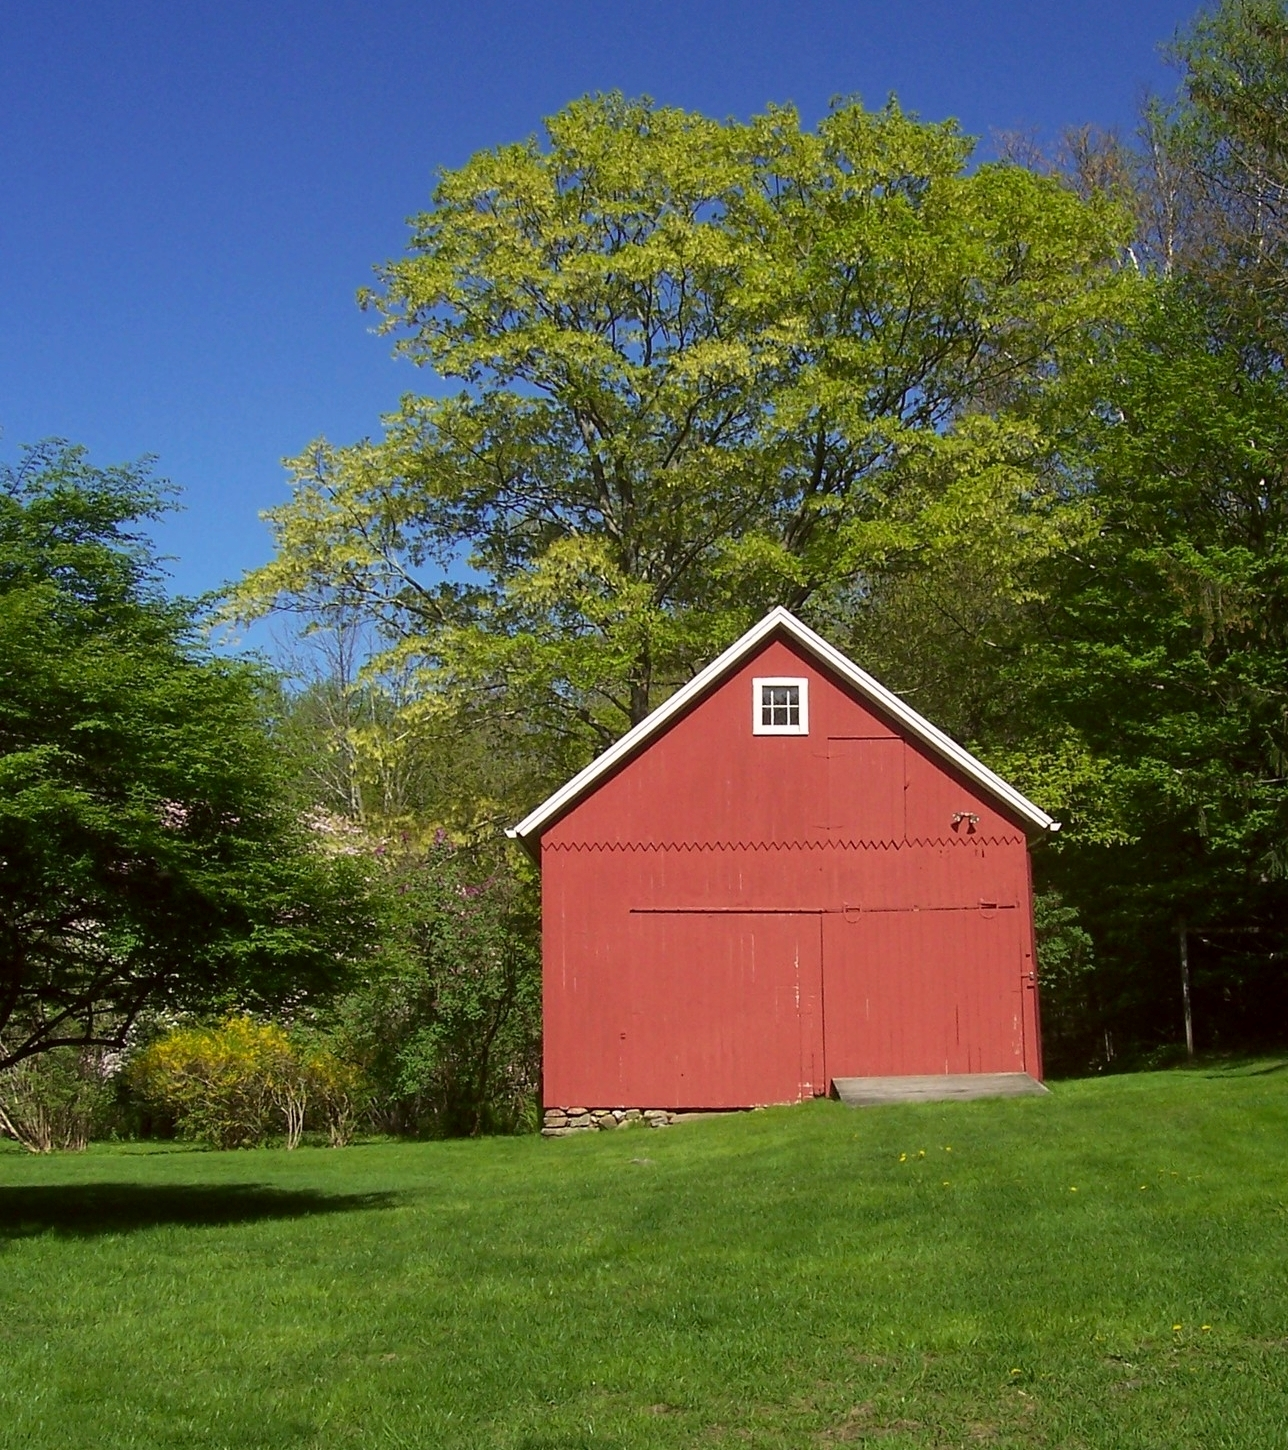 washington barn.jpg